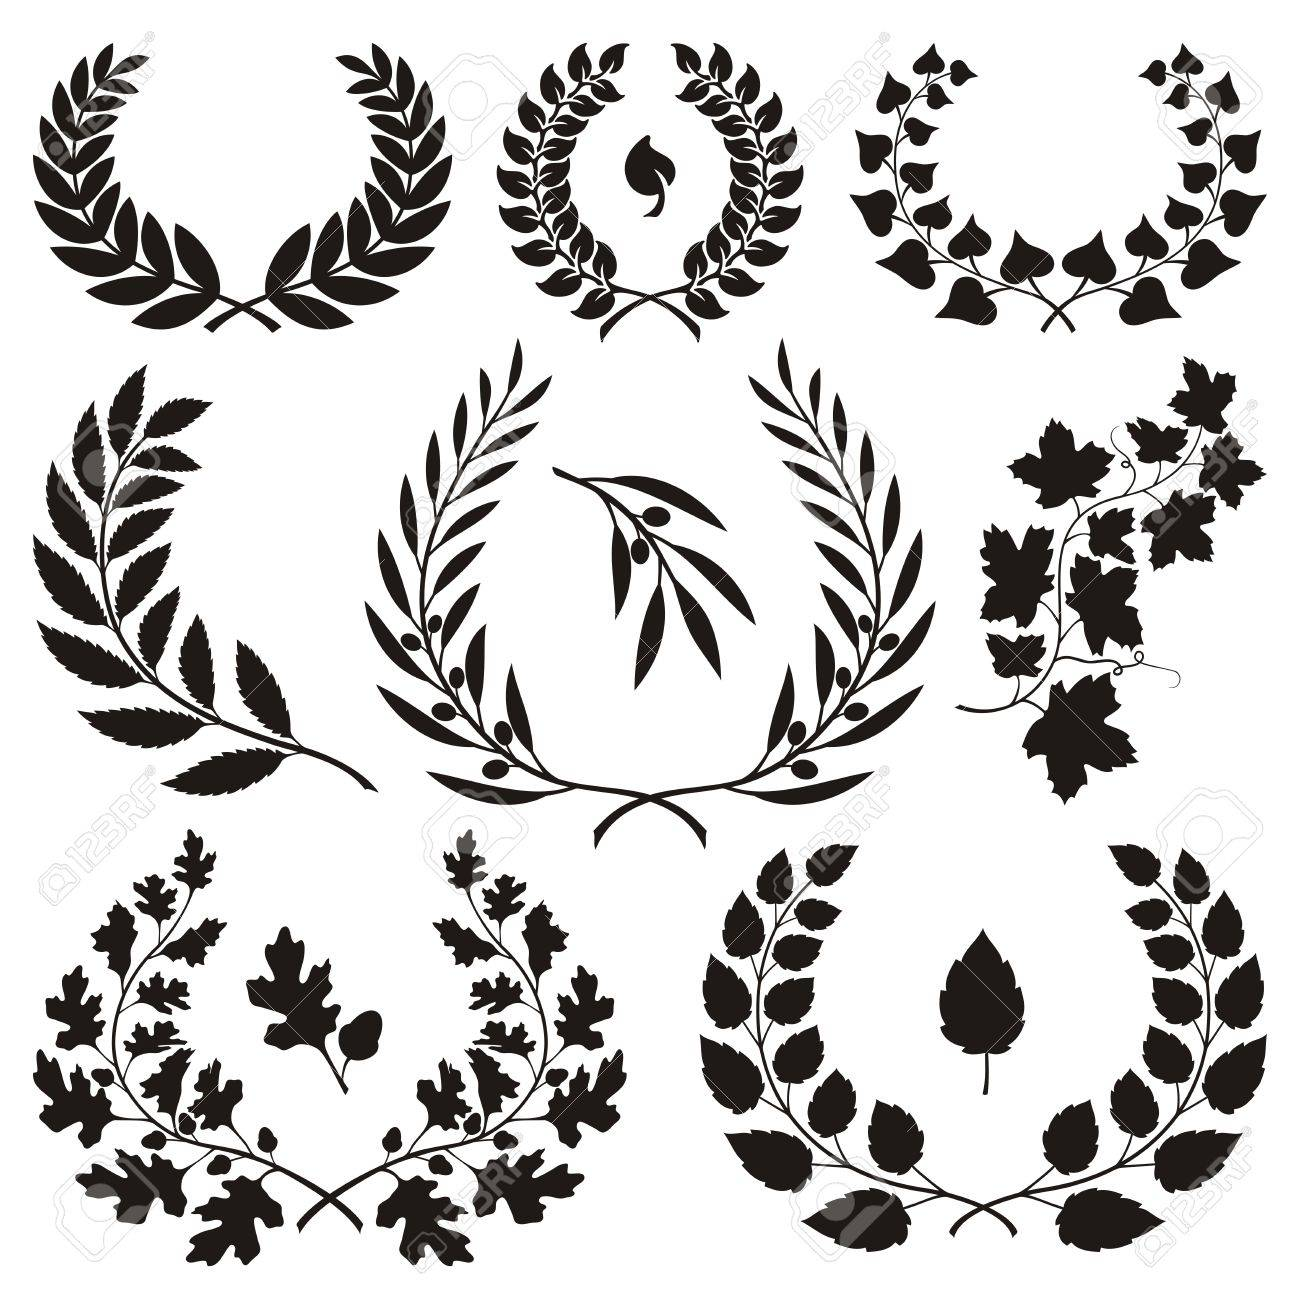 Various wreath icons isolated on white background. - 19612100